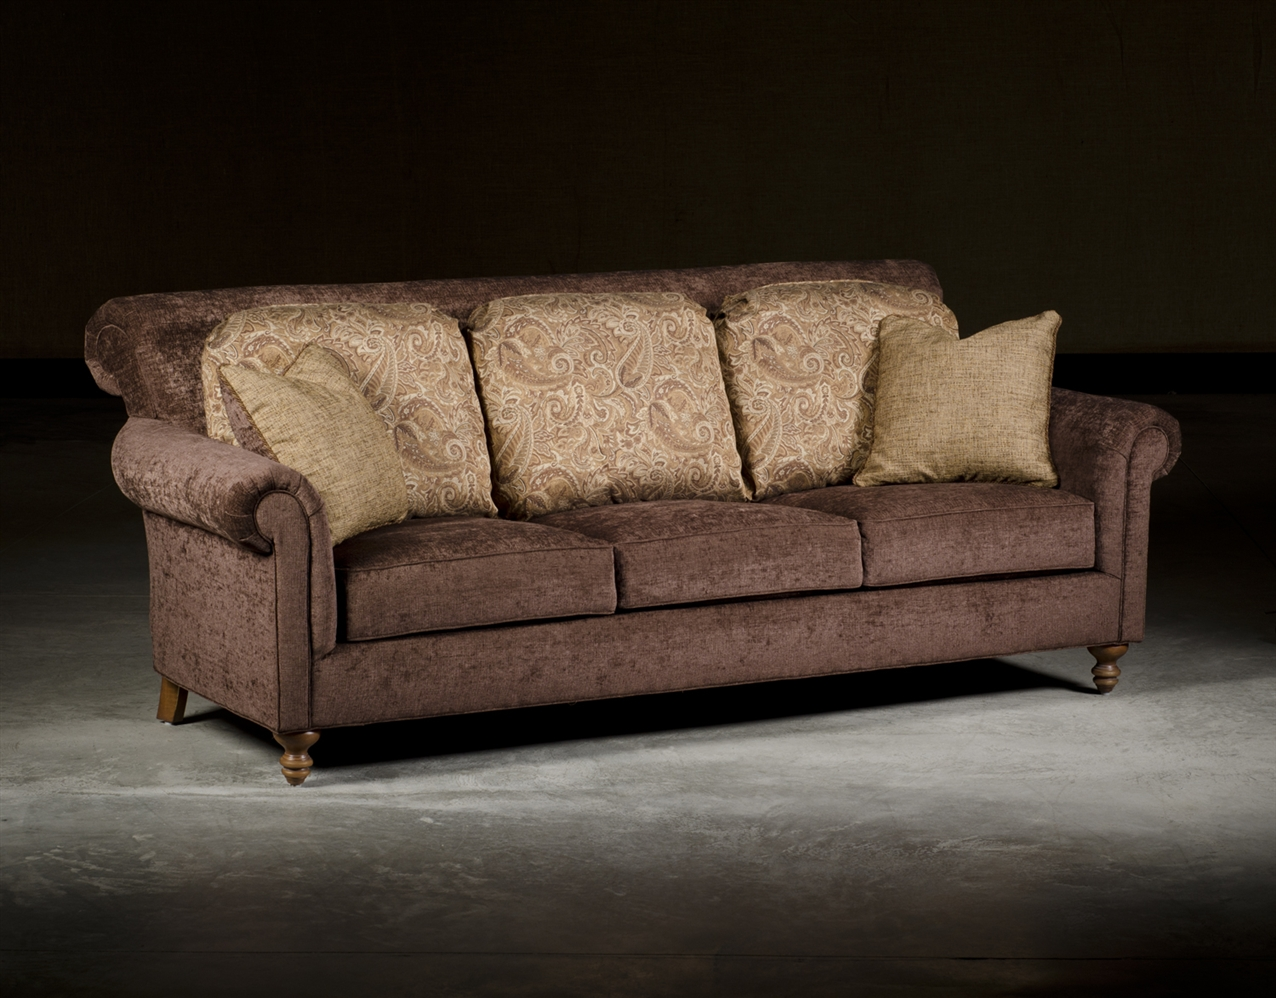 Best buy couch high quality furniture for Best quality upholstered furniture